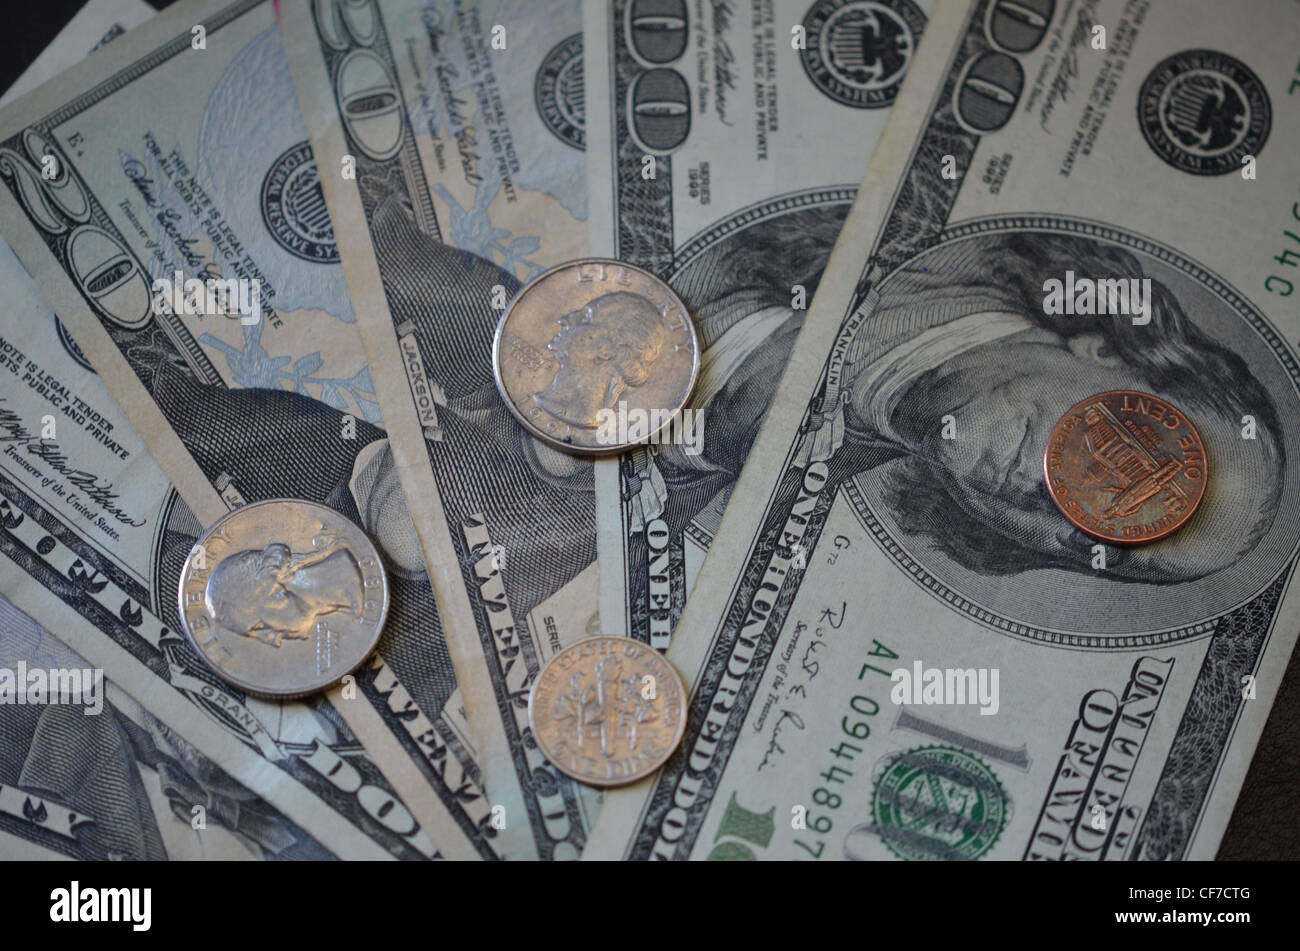 large bills US currency and change - Stock Image